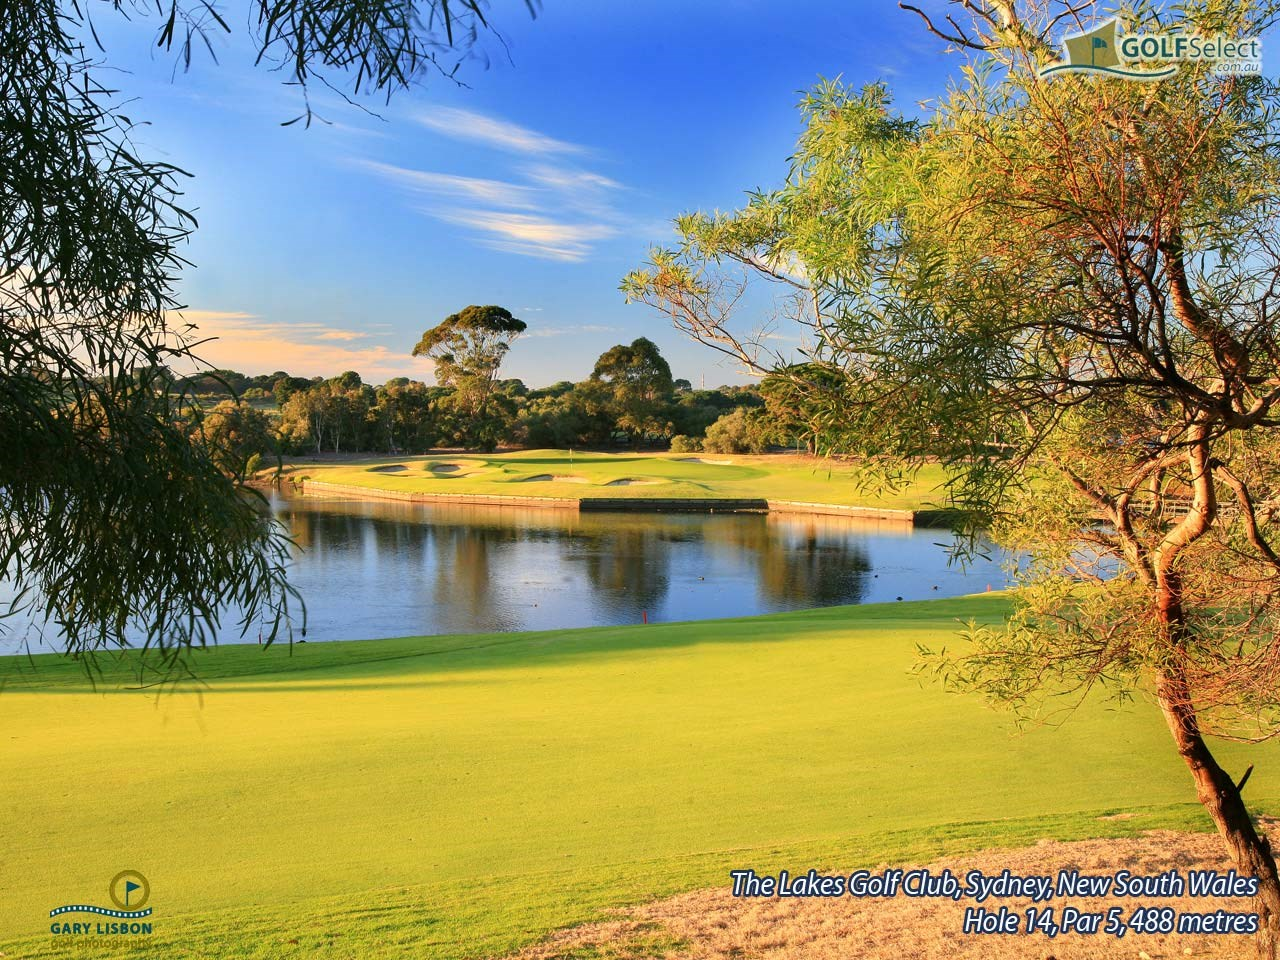 The Lakes Golf Club Hole 14, Par 5, 488 metres